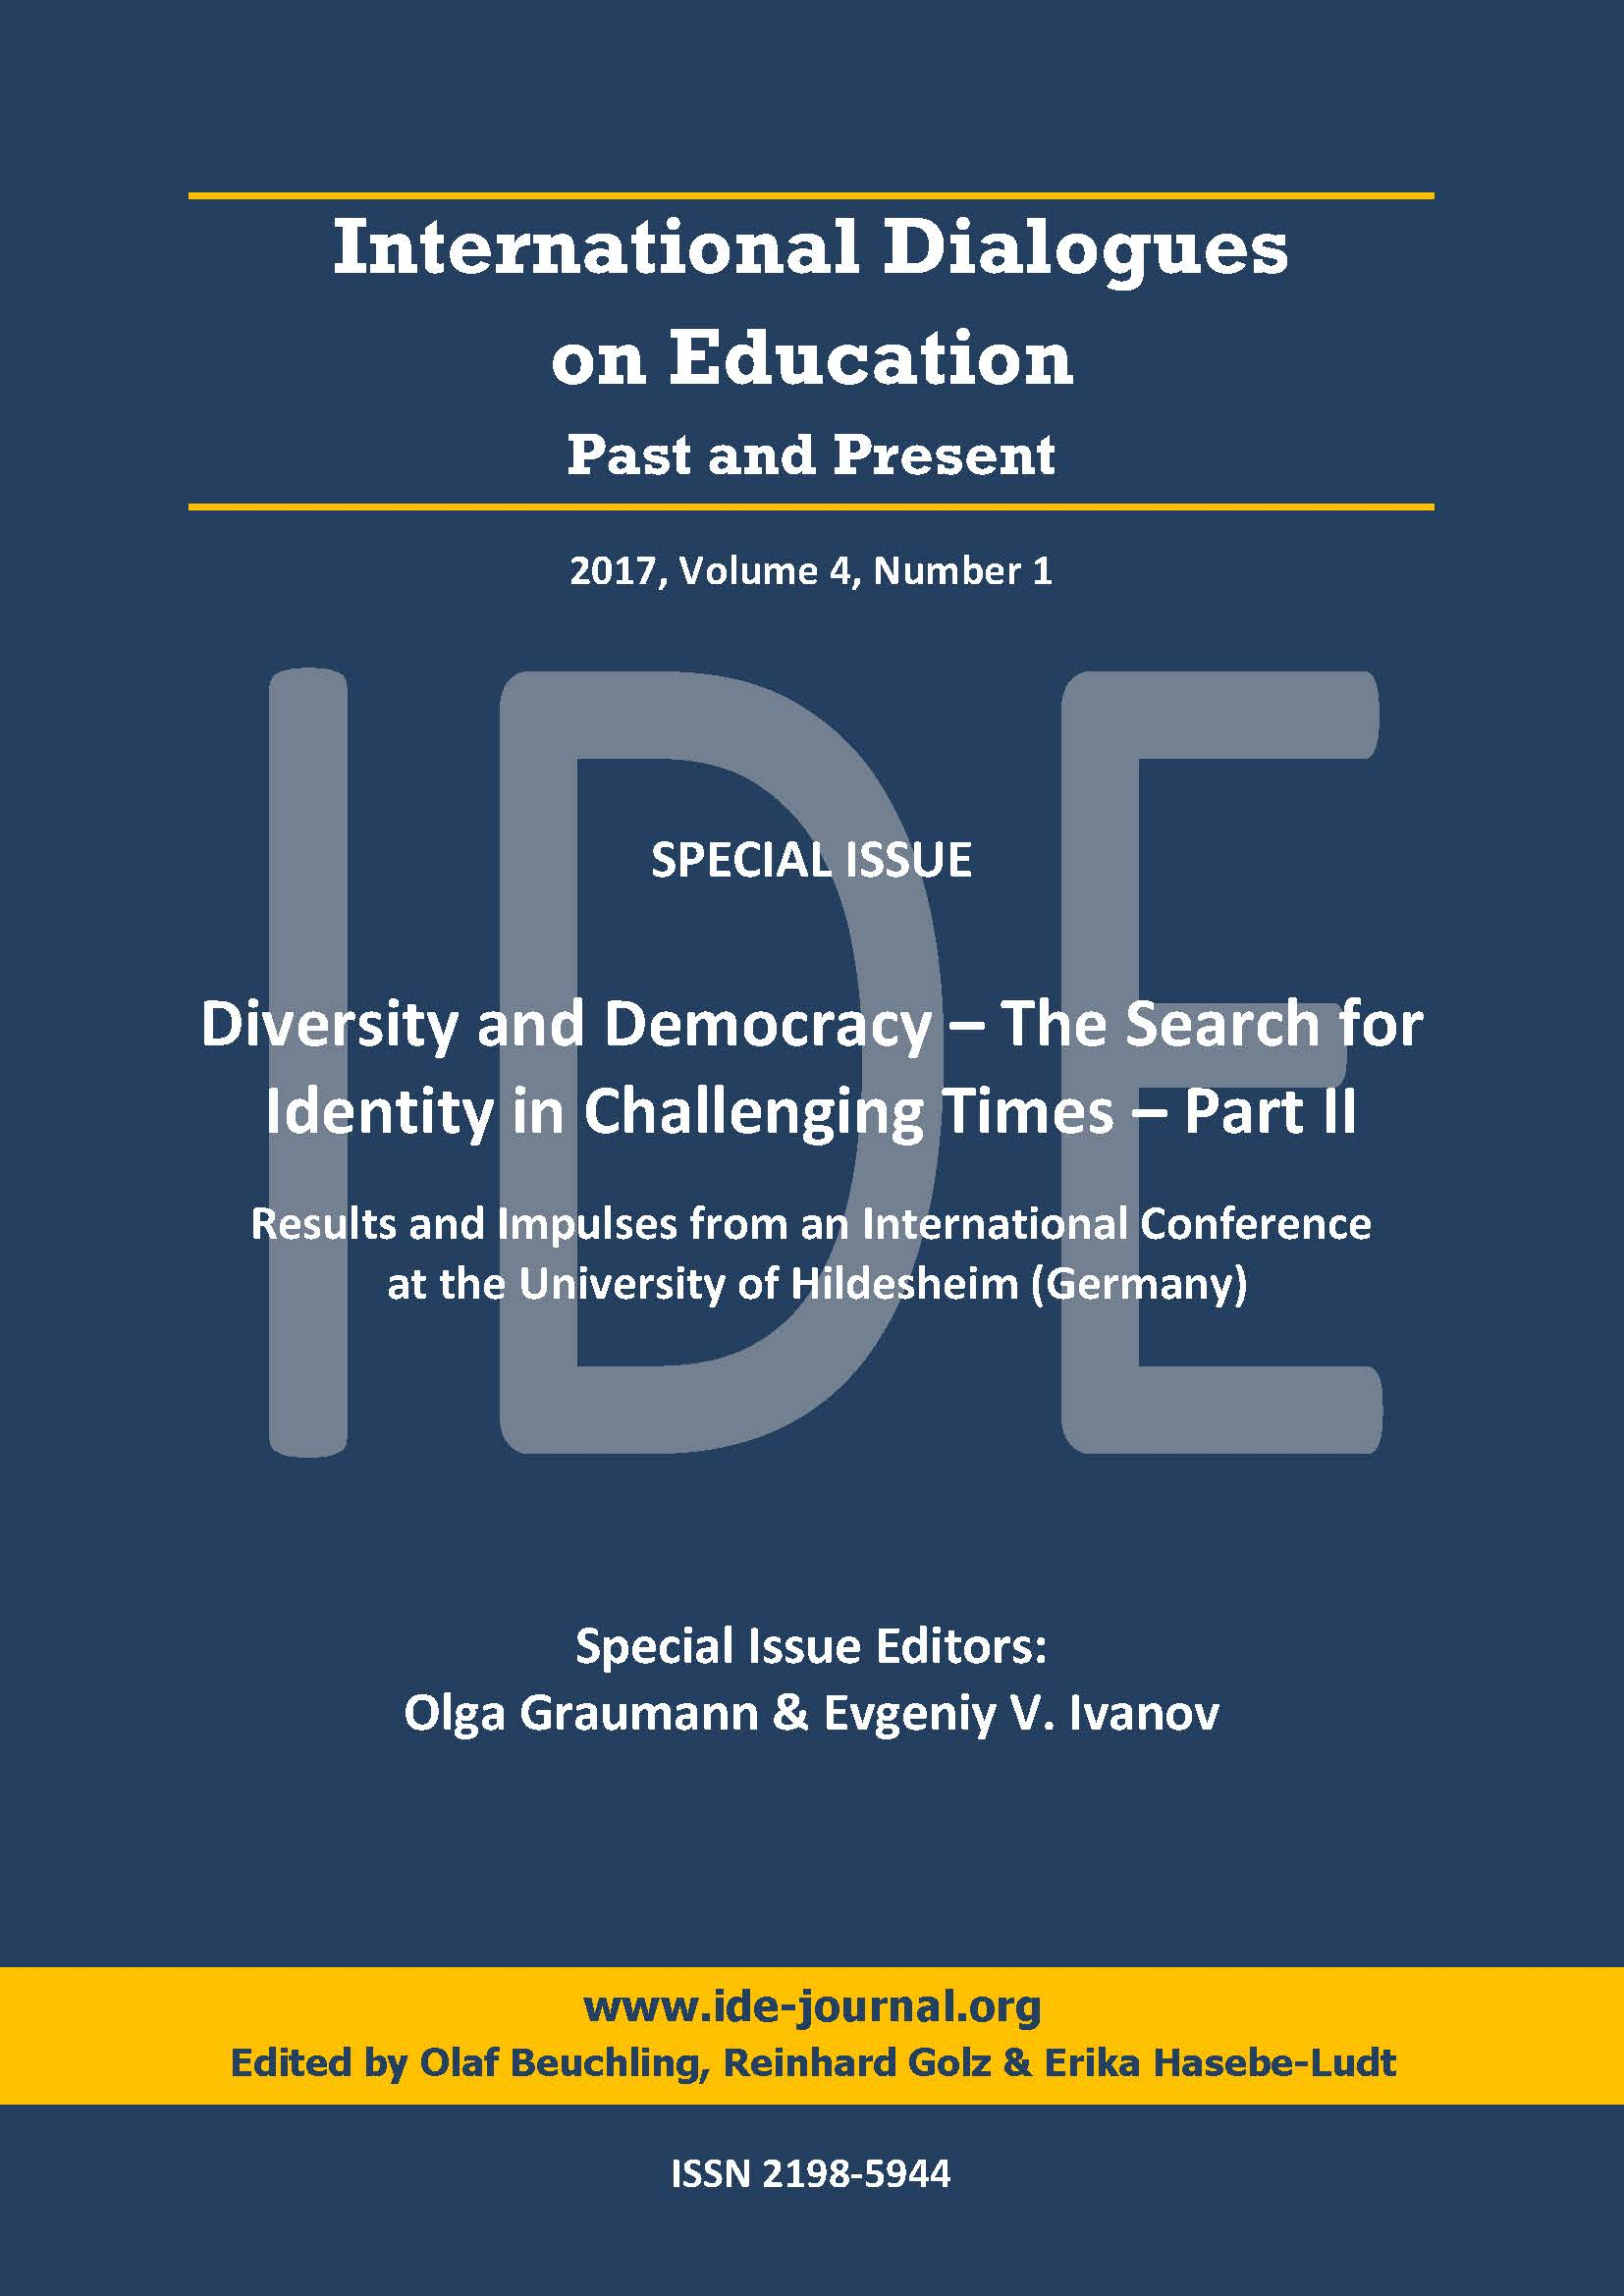 View Vol. 4 No. 1 (2017): Special Issue: Diversity and Democracy – The Search for Identity in Challenging Times: Results and Impulses from a Conference Part II